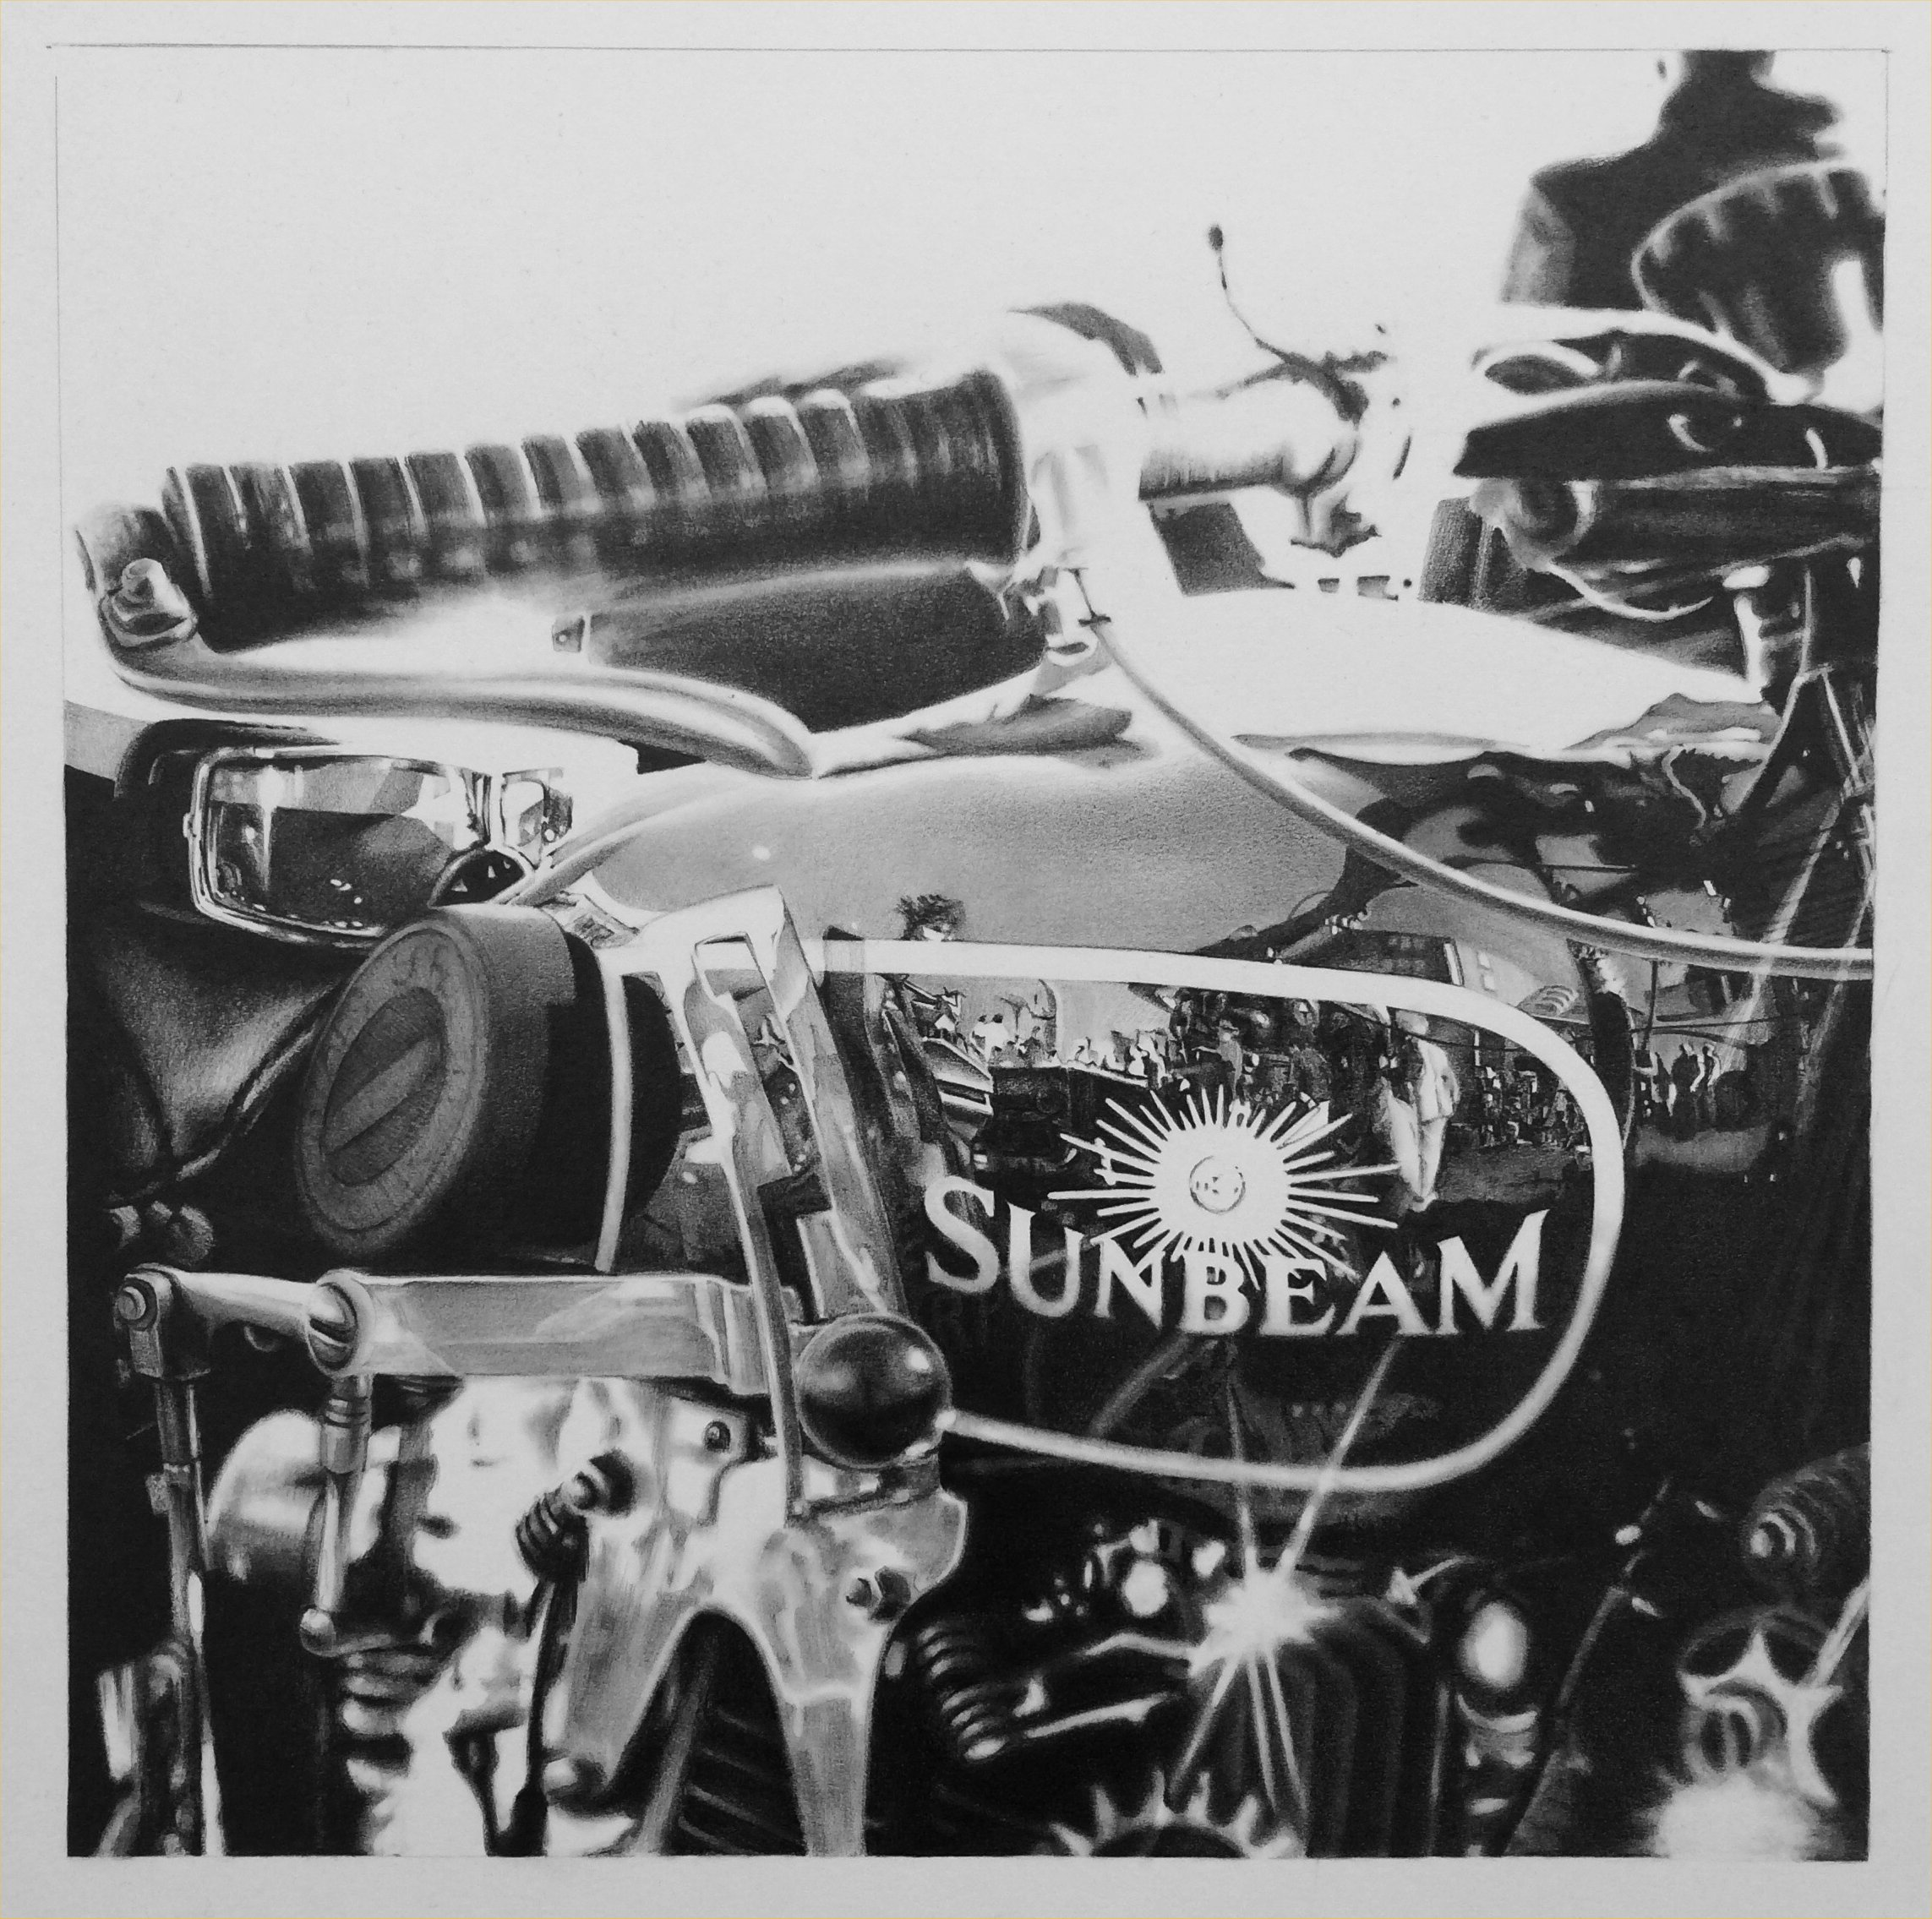 Riding on a Sunbeam by Lou Sprockett